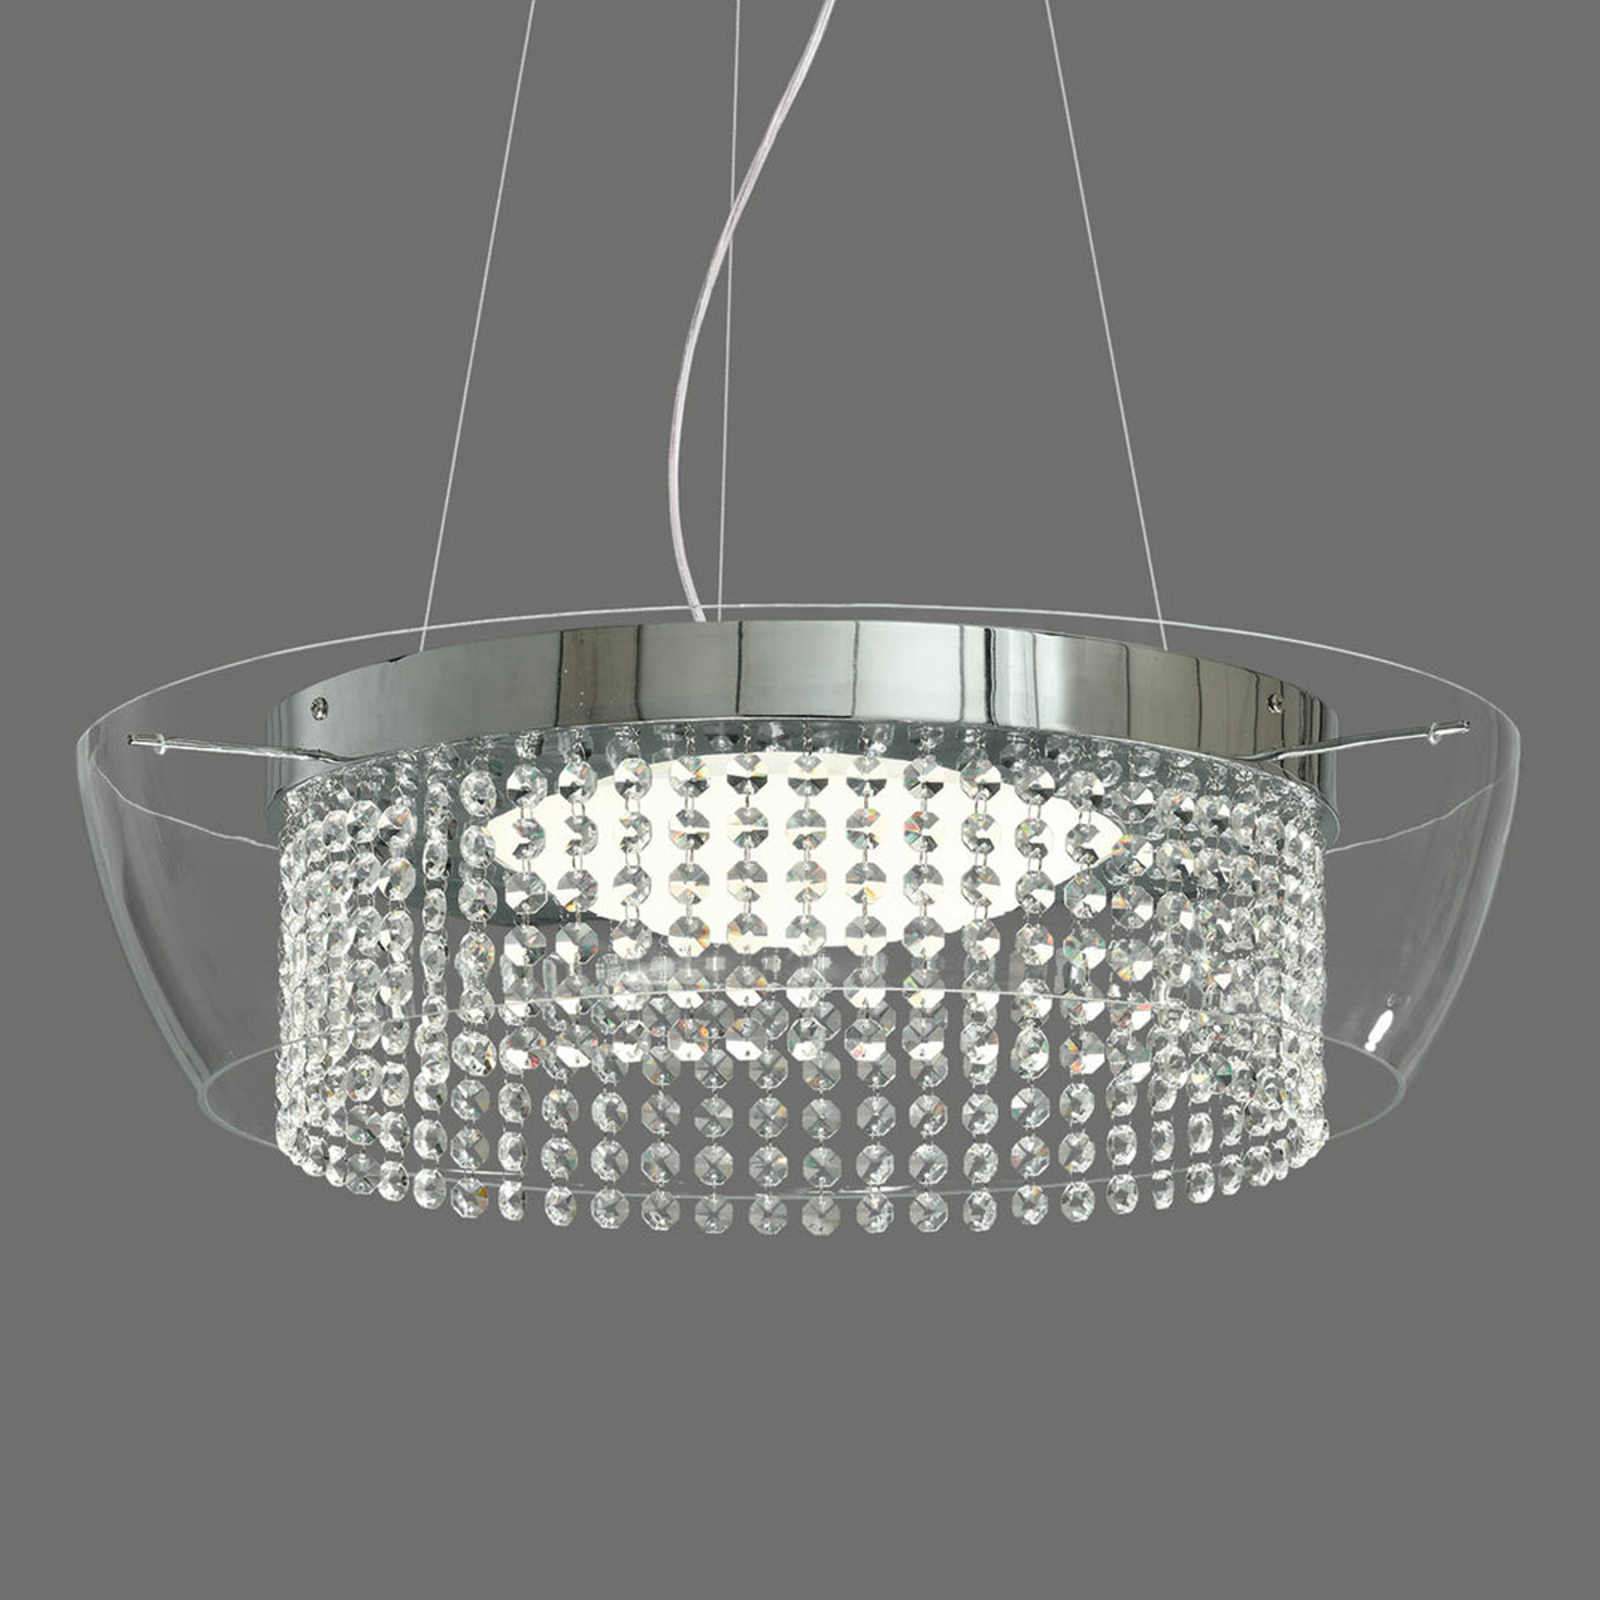 Ital - suspension LED avec cristaux